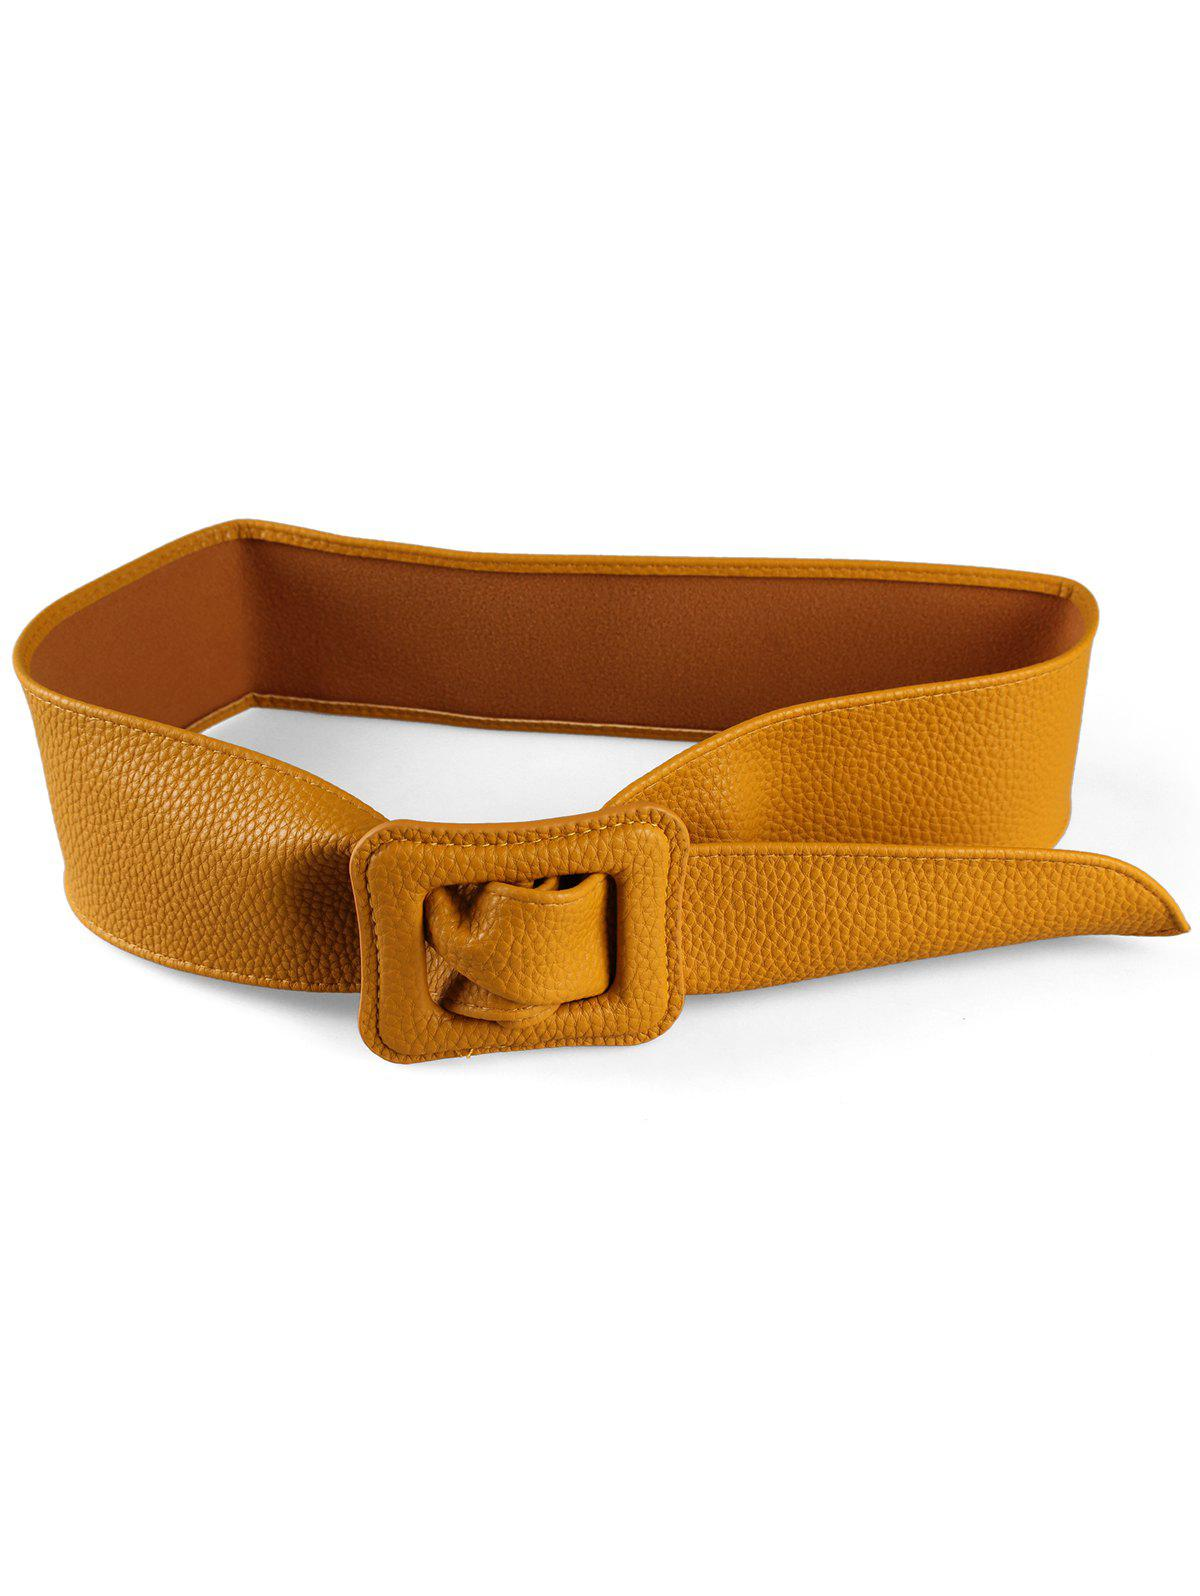 Buy PU Leather Square Buckle Wide Belt